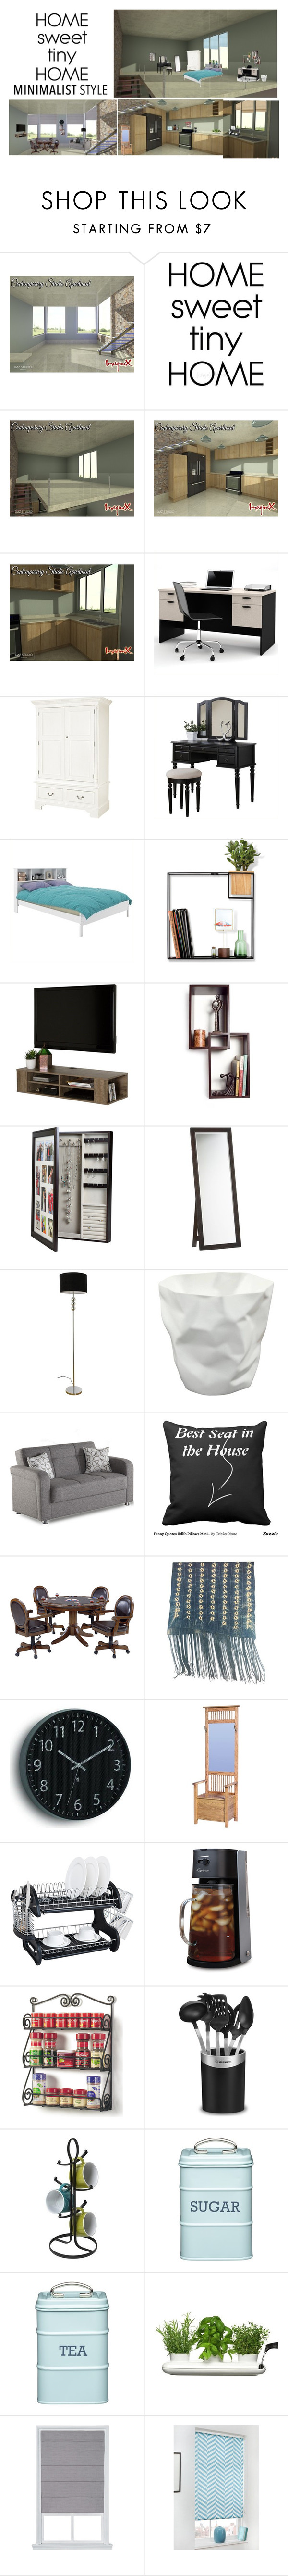 """Home Sweet Tiny Minimalist Home"" by pinky-dee ❤ liked on Polyvore featuring interior, interiors, interior design, home, home decor, interior decorating, Bestar, Poundex, Sonax and Umbra"